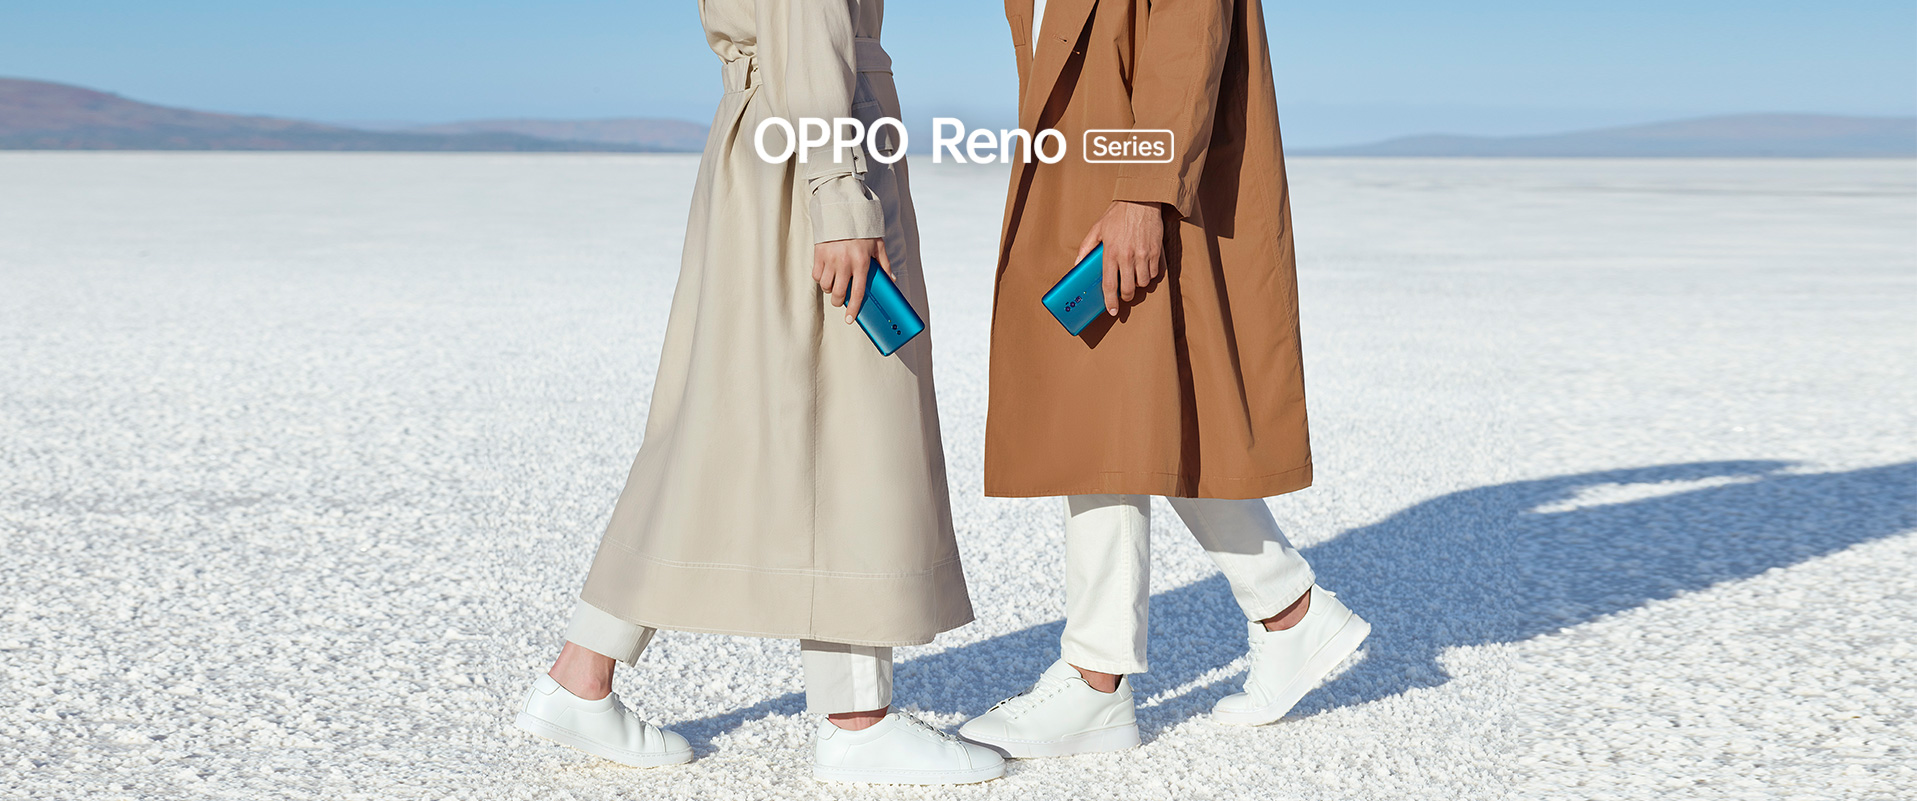 OPPO Mobile for Smartphones & Accessories - OPPO Indonesia